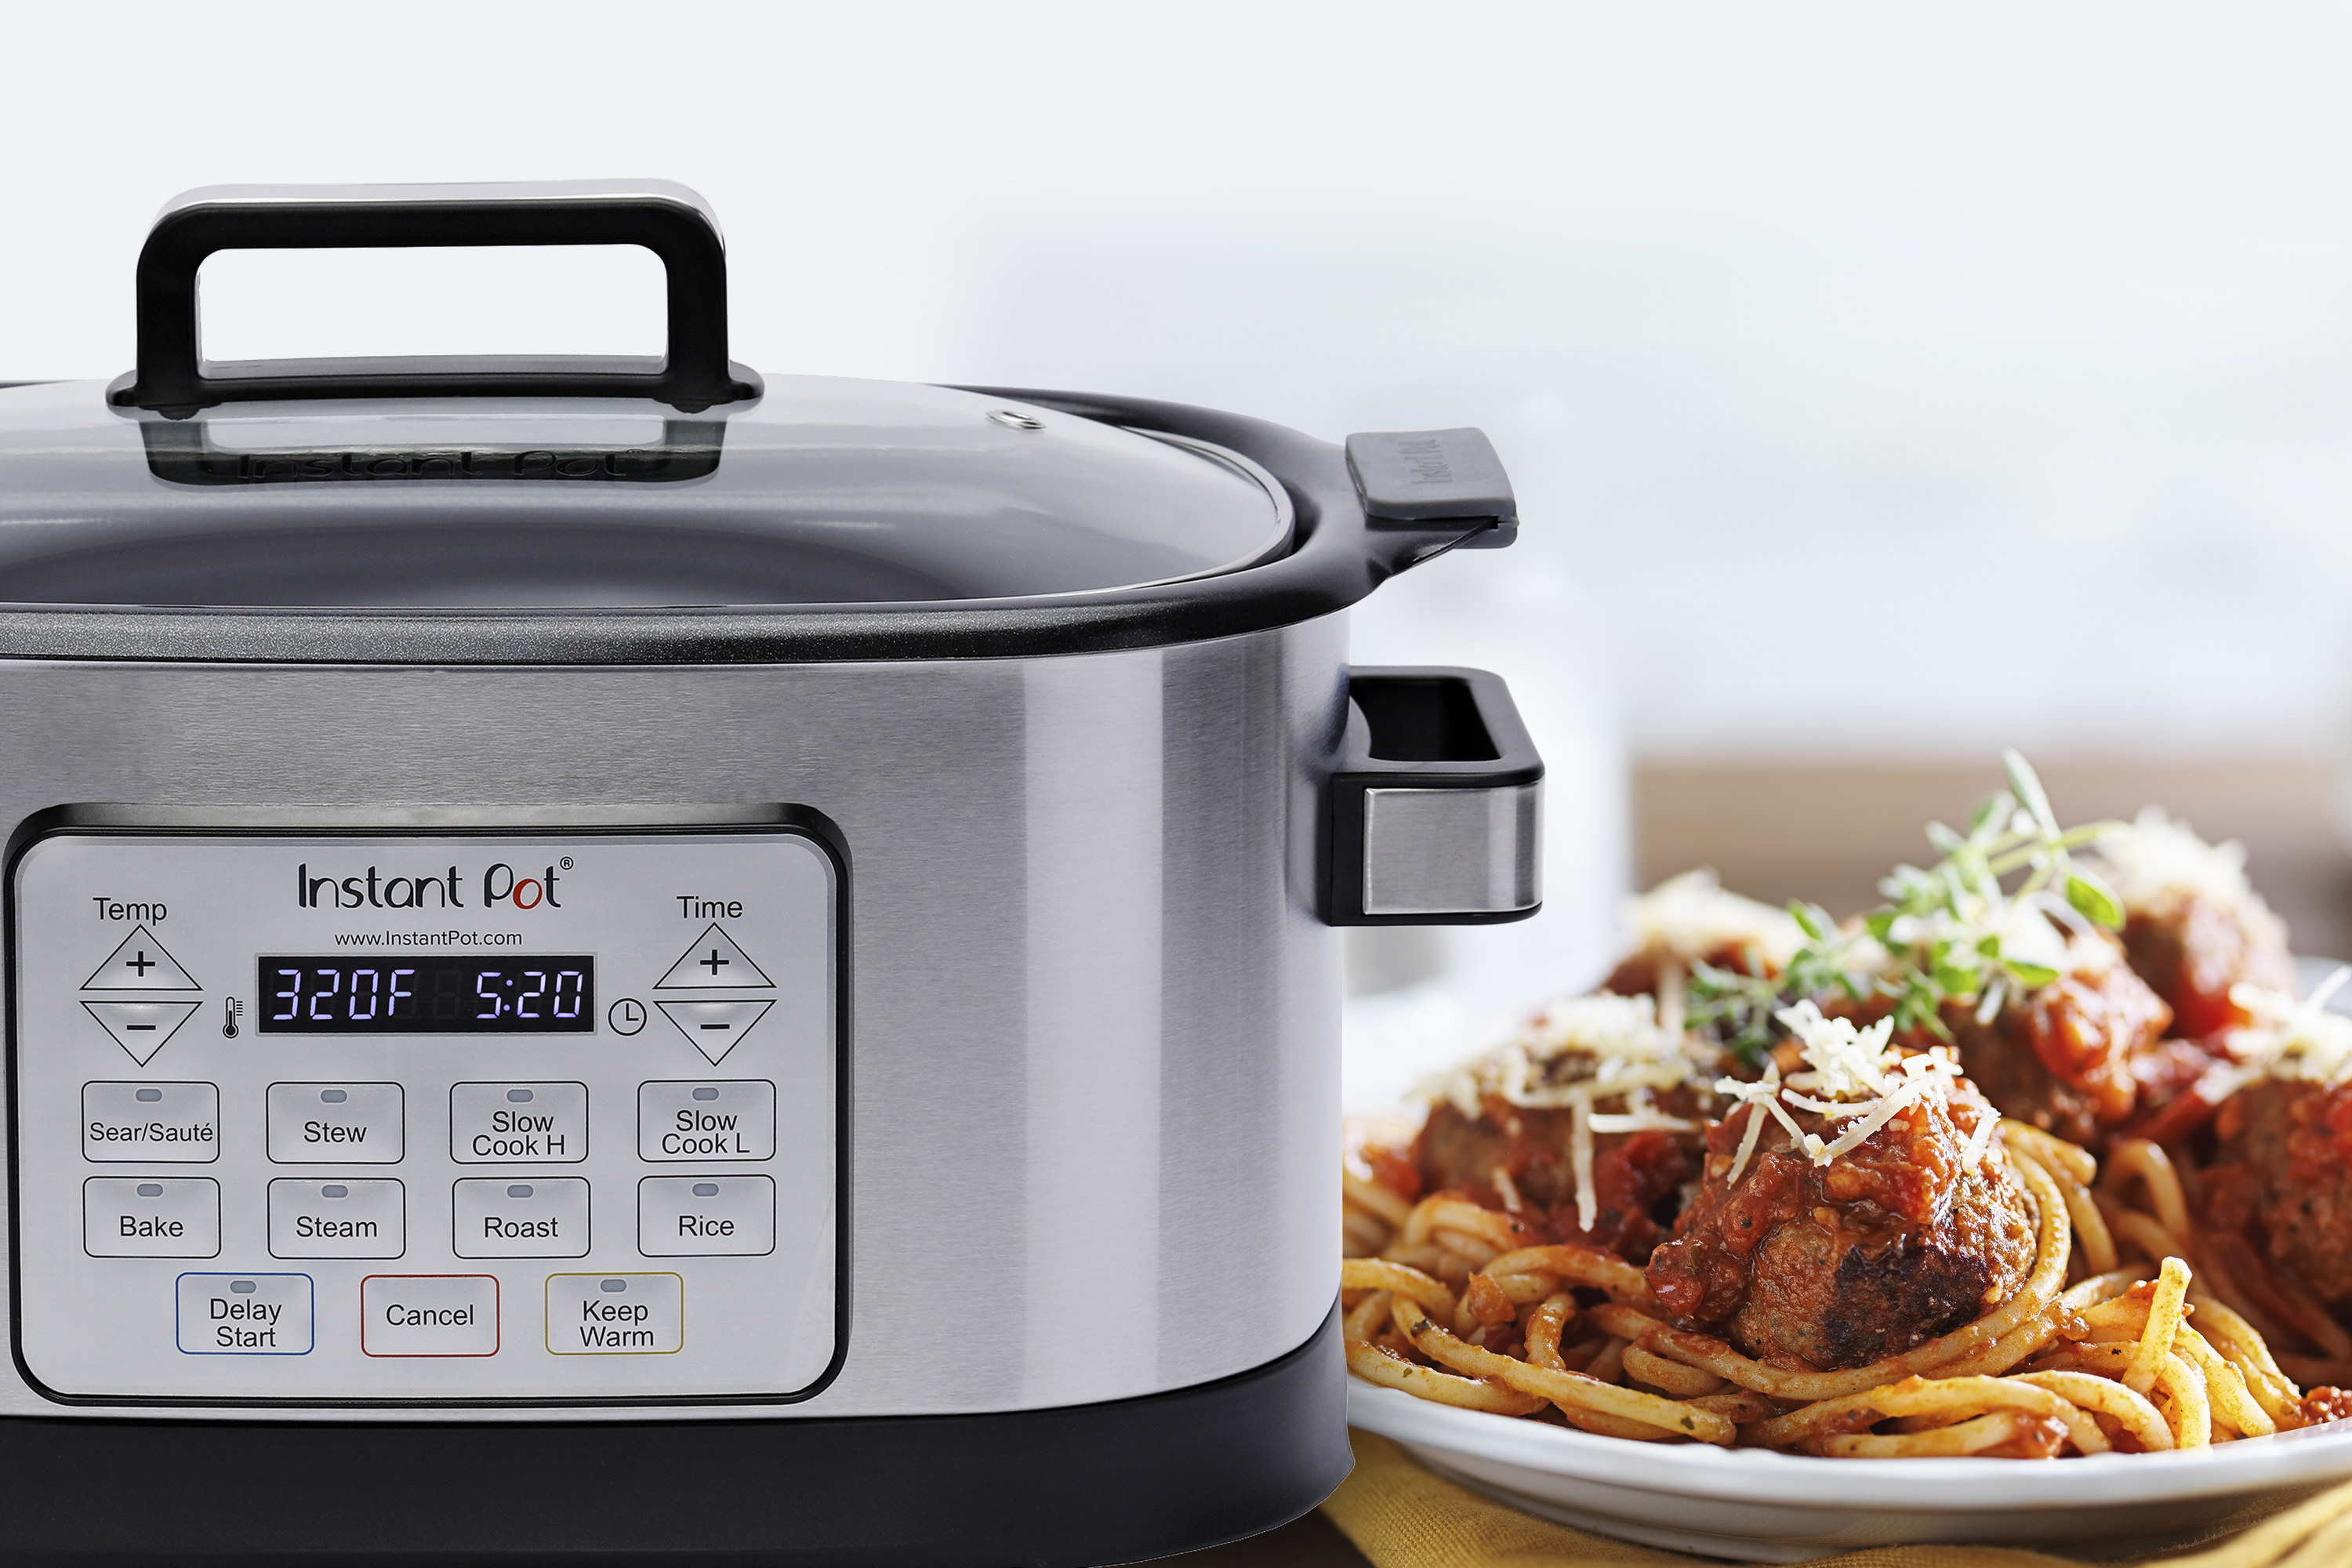 The Instant Pot slow cooker